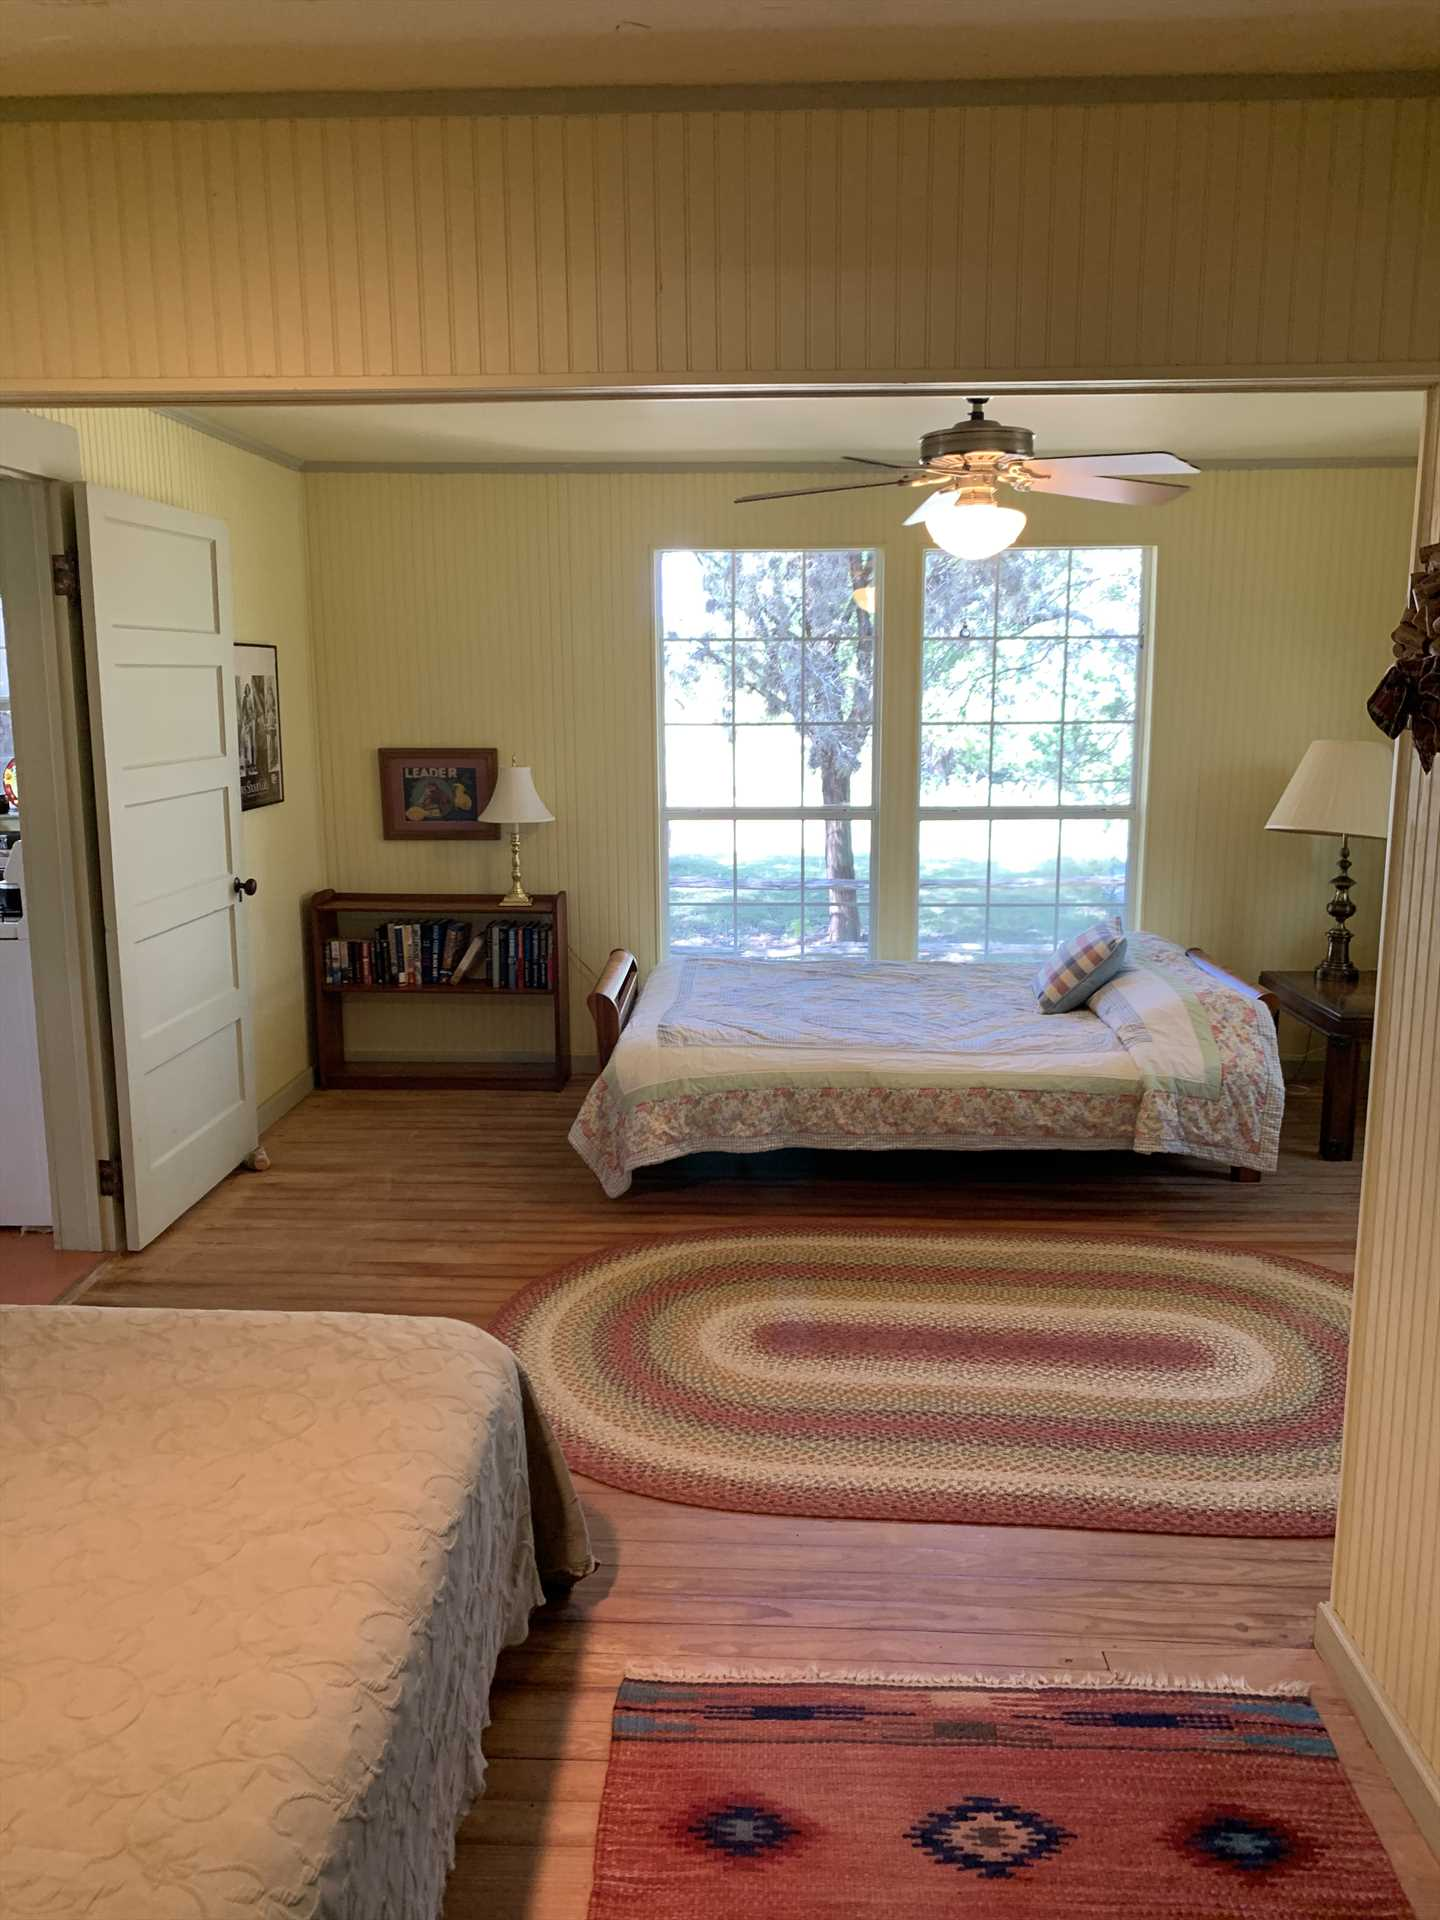 Restful slumber will greet you in the main bedroom, furnished with both a queen and full bed.